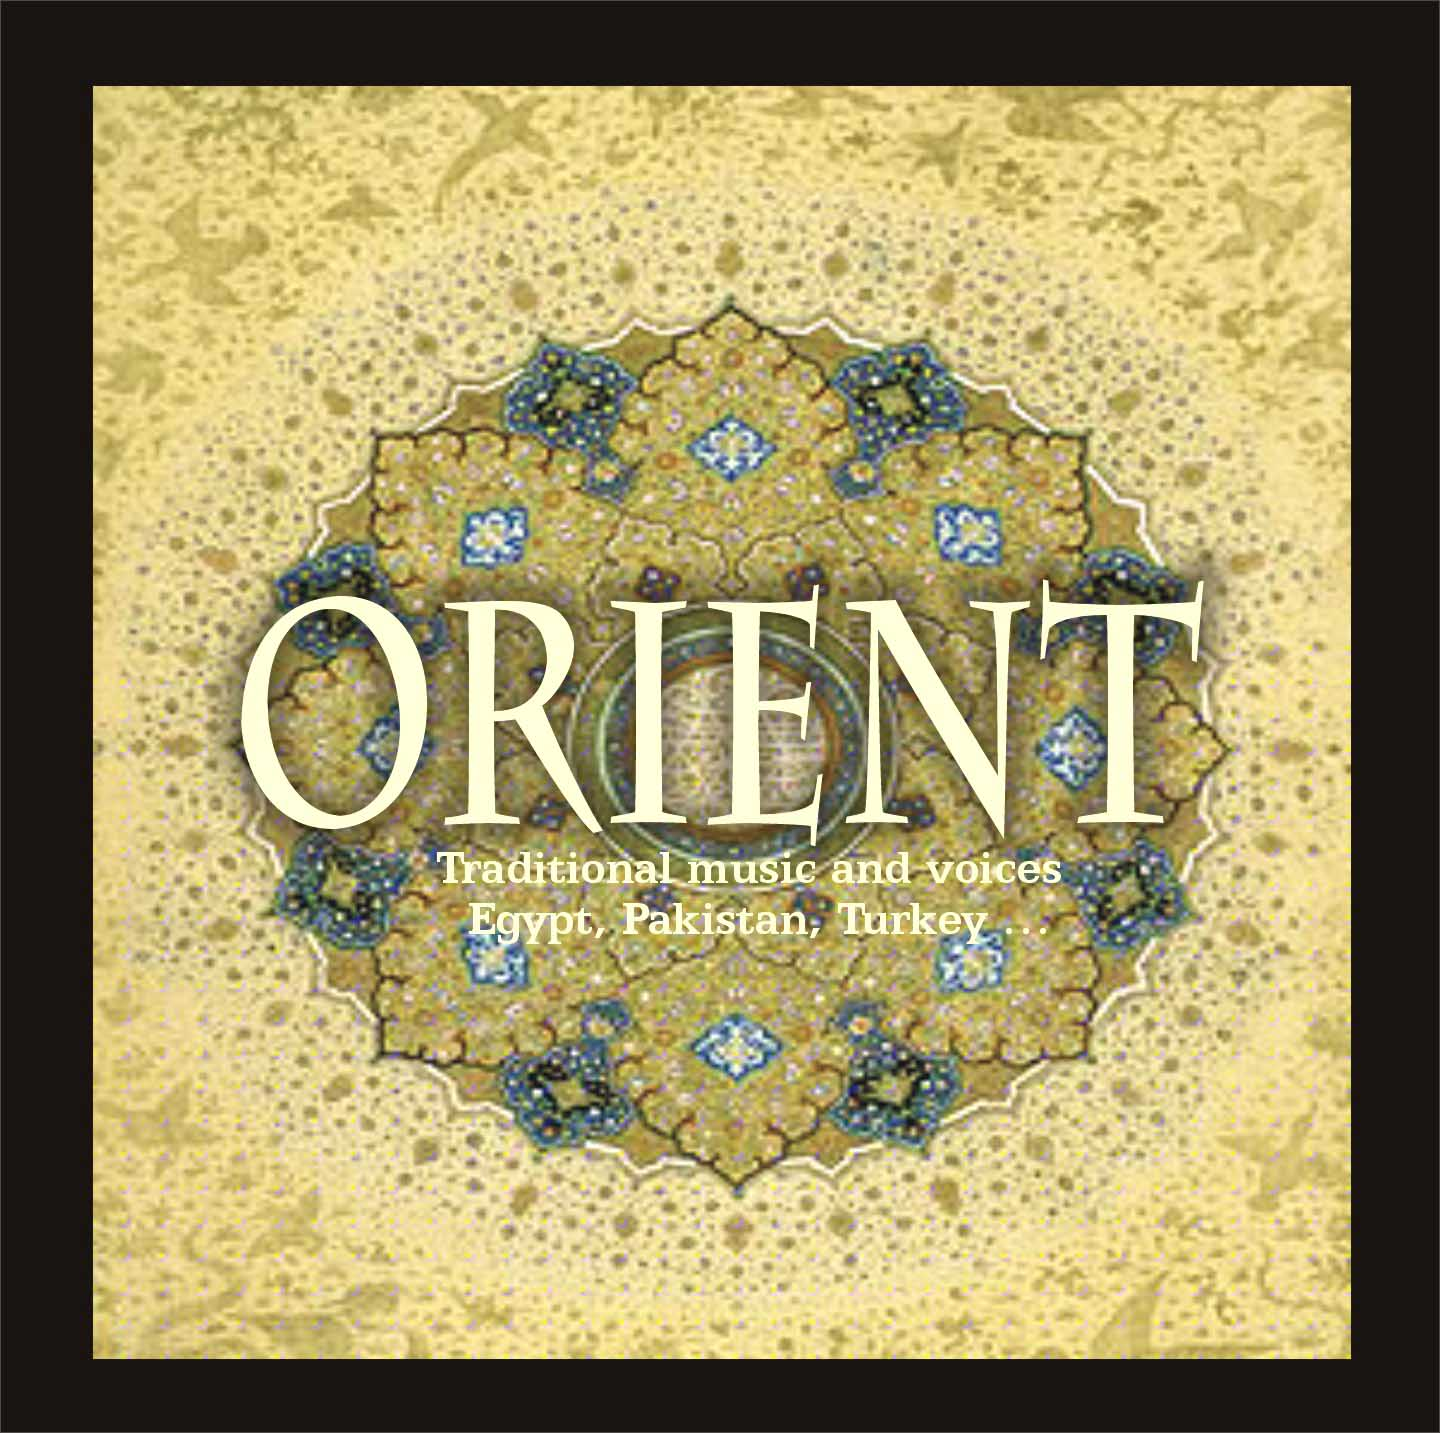 ORIENT - traditional music